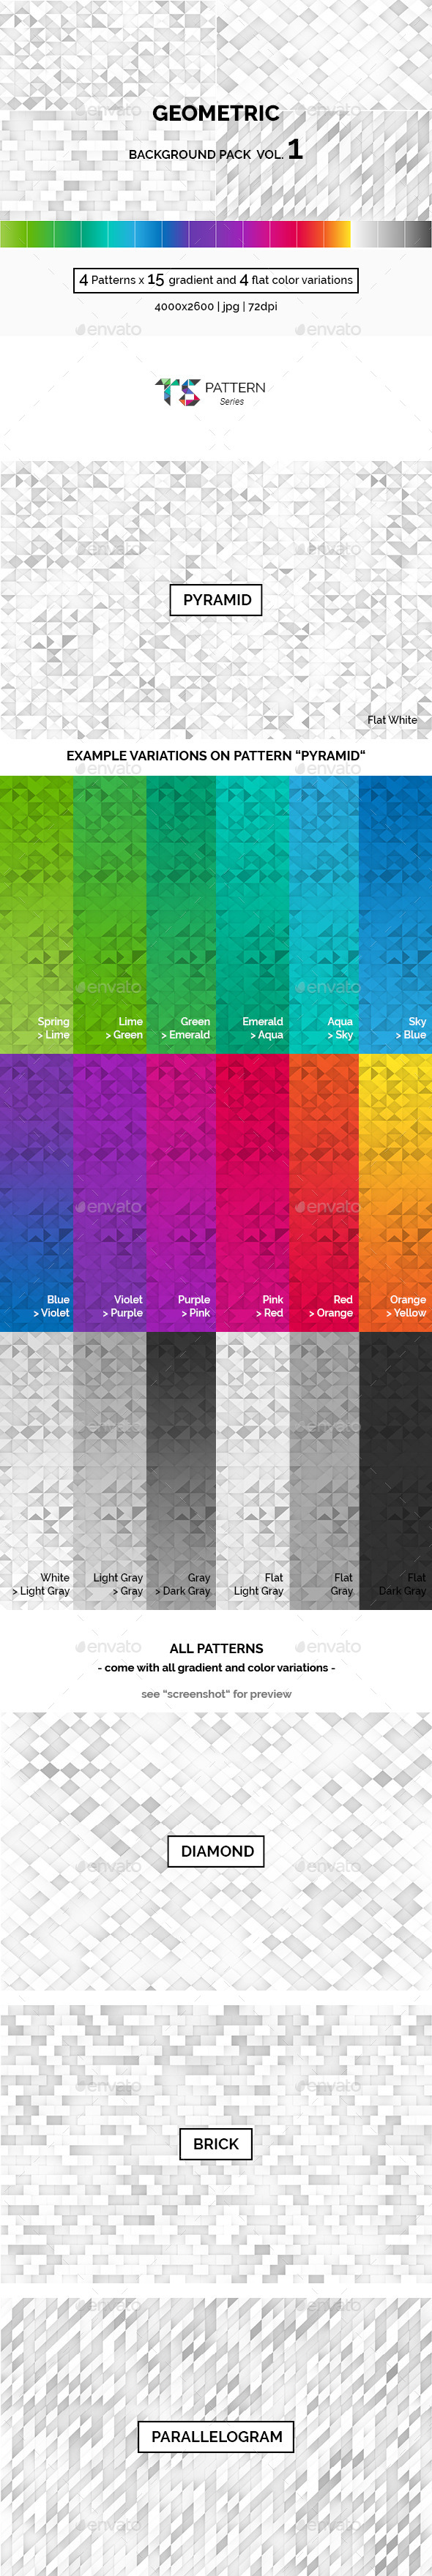 Geometric Background Pack Vol.1 - Abstract Backgrounds